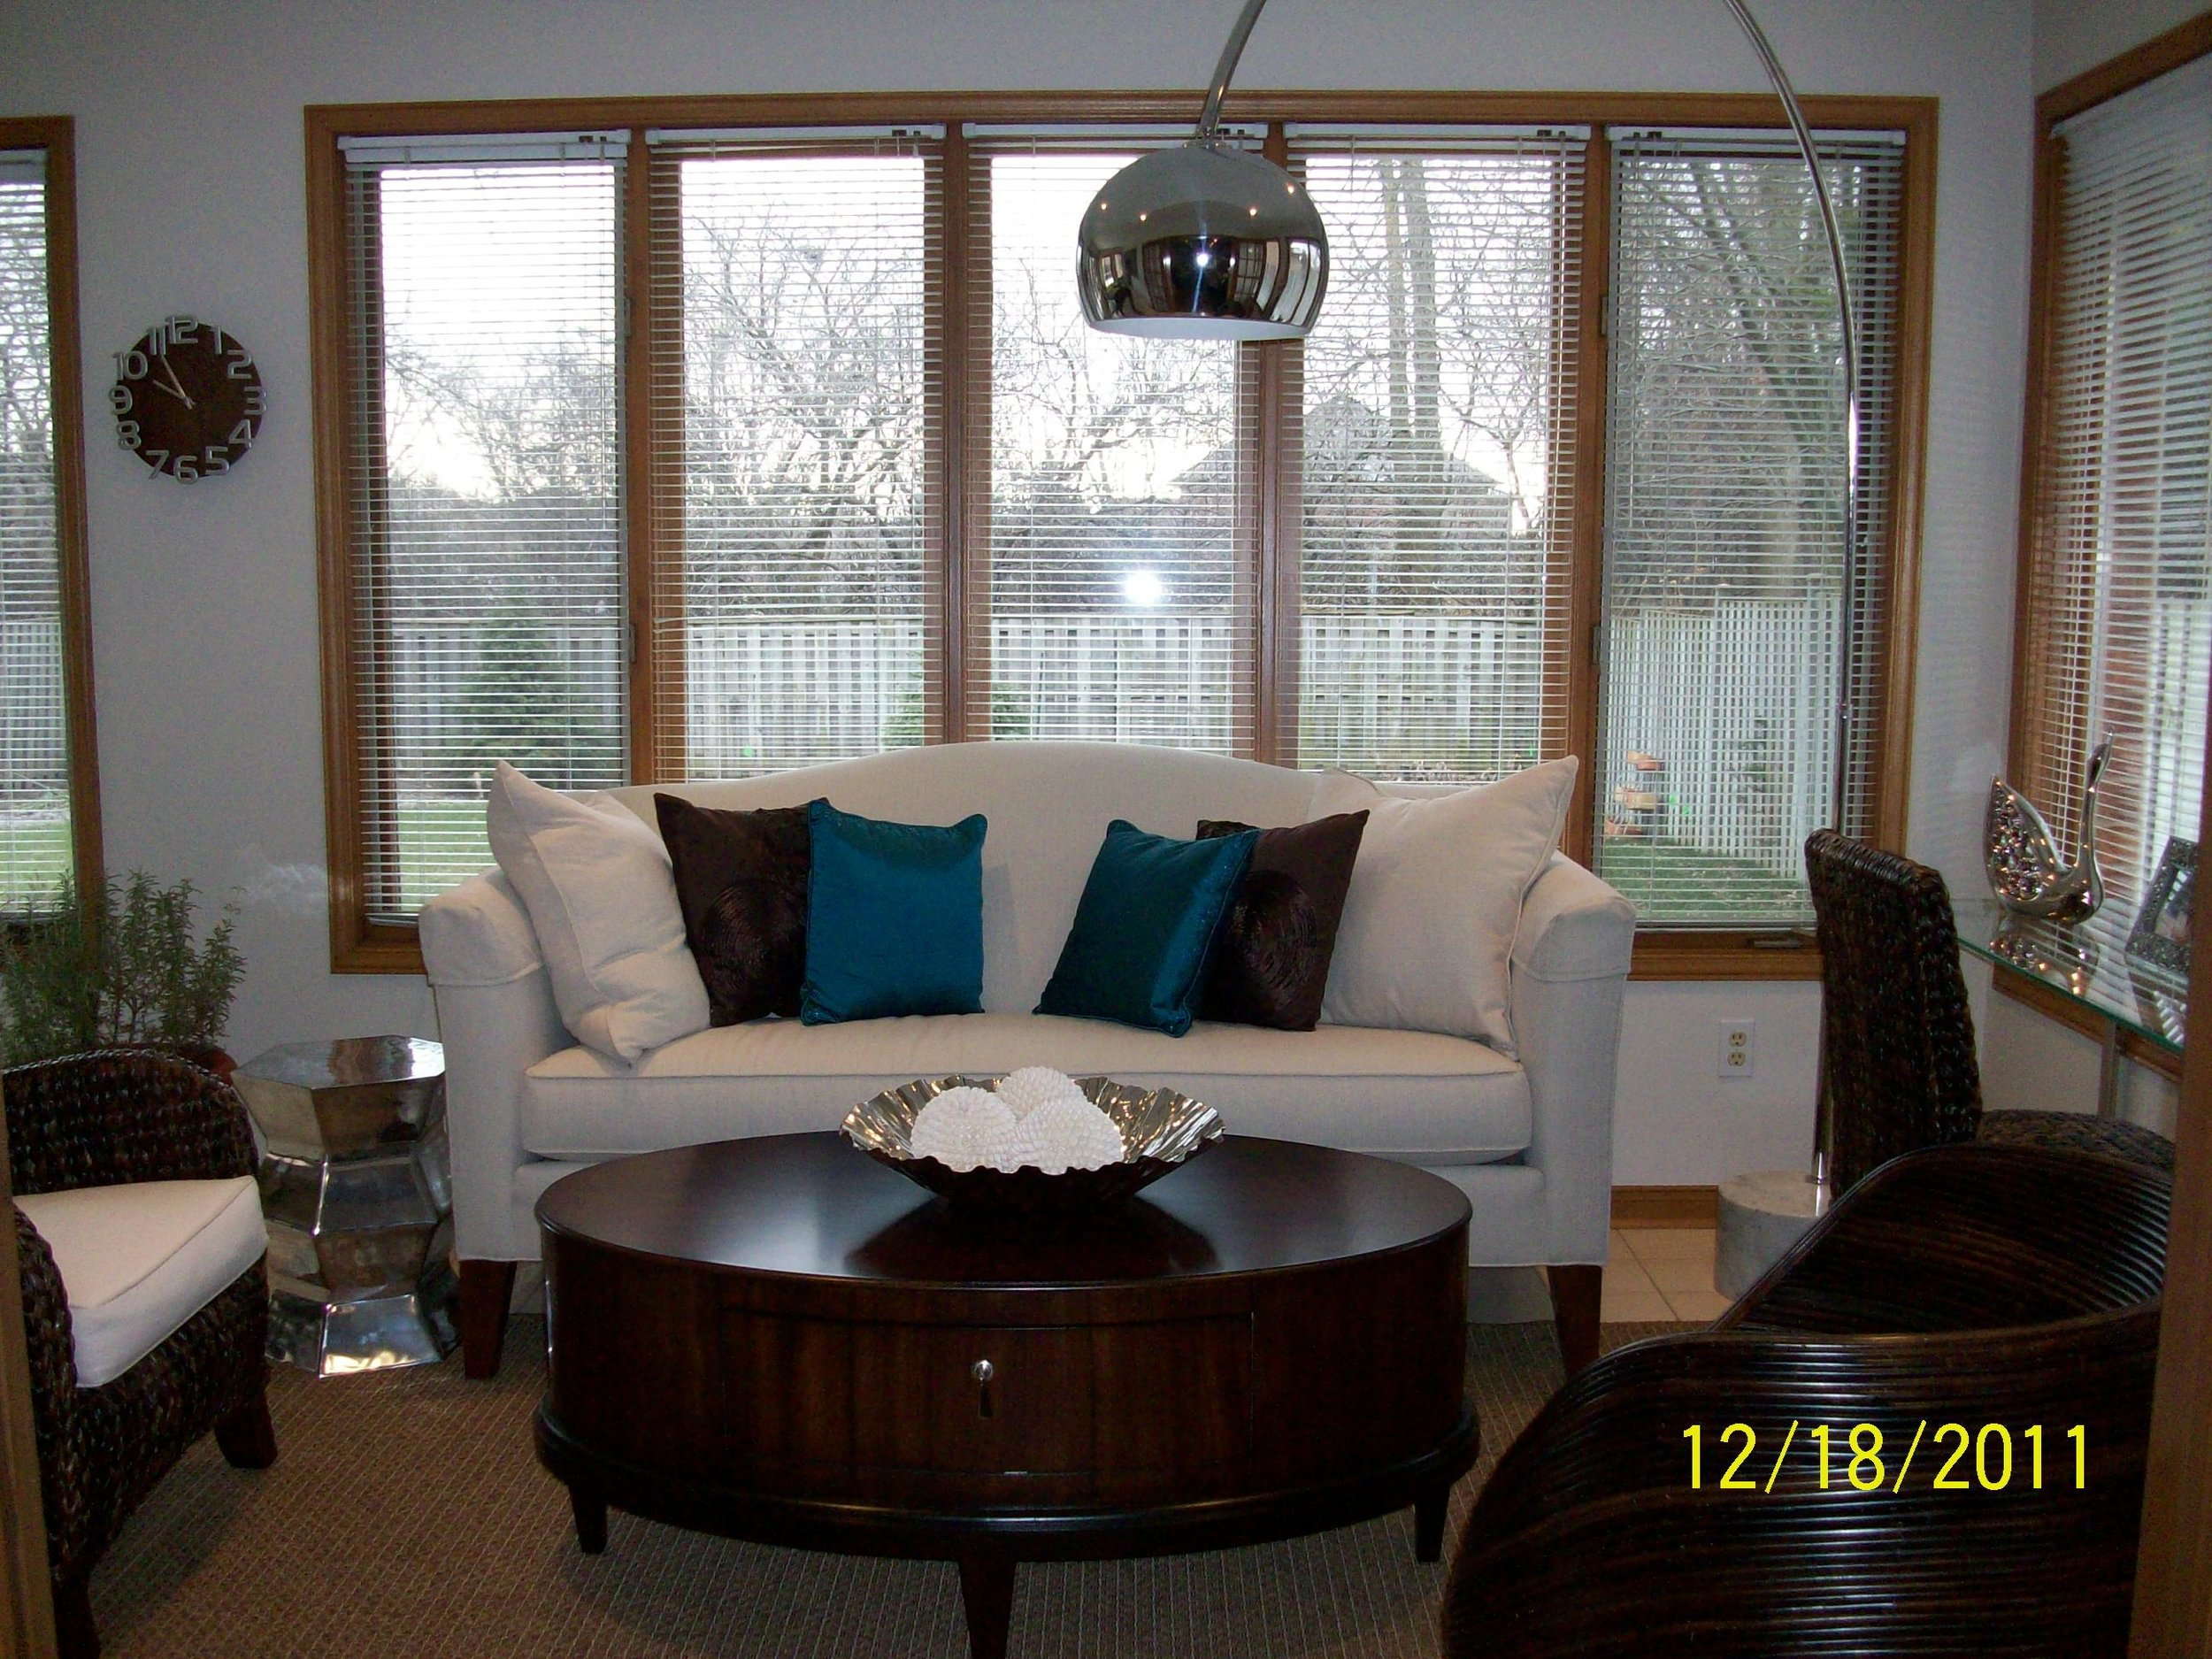 Mississauga living room with cream couch and blue pillows - dark walnut coffee table - free standing lamp.jpeg